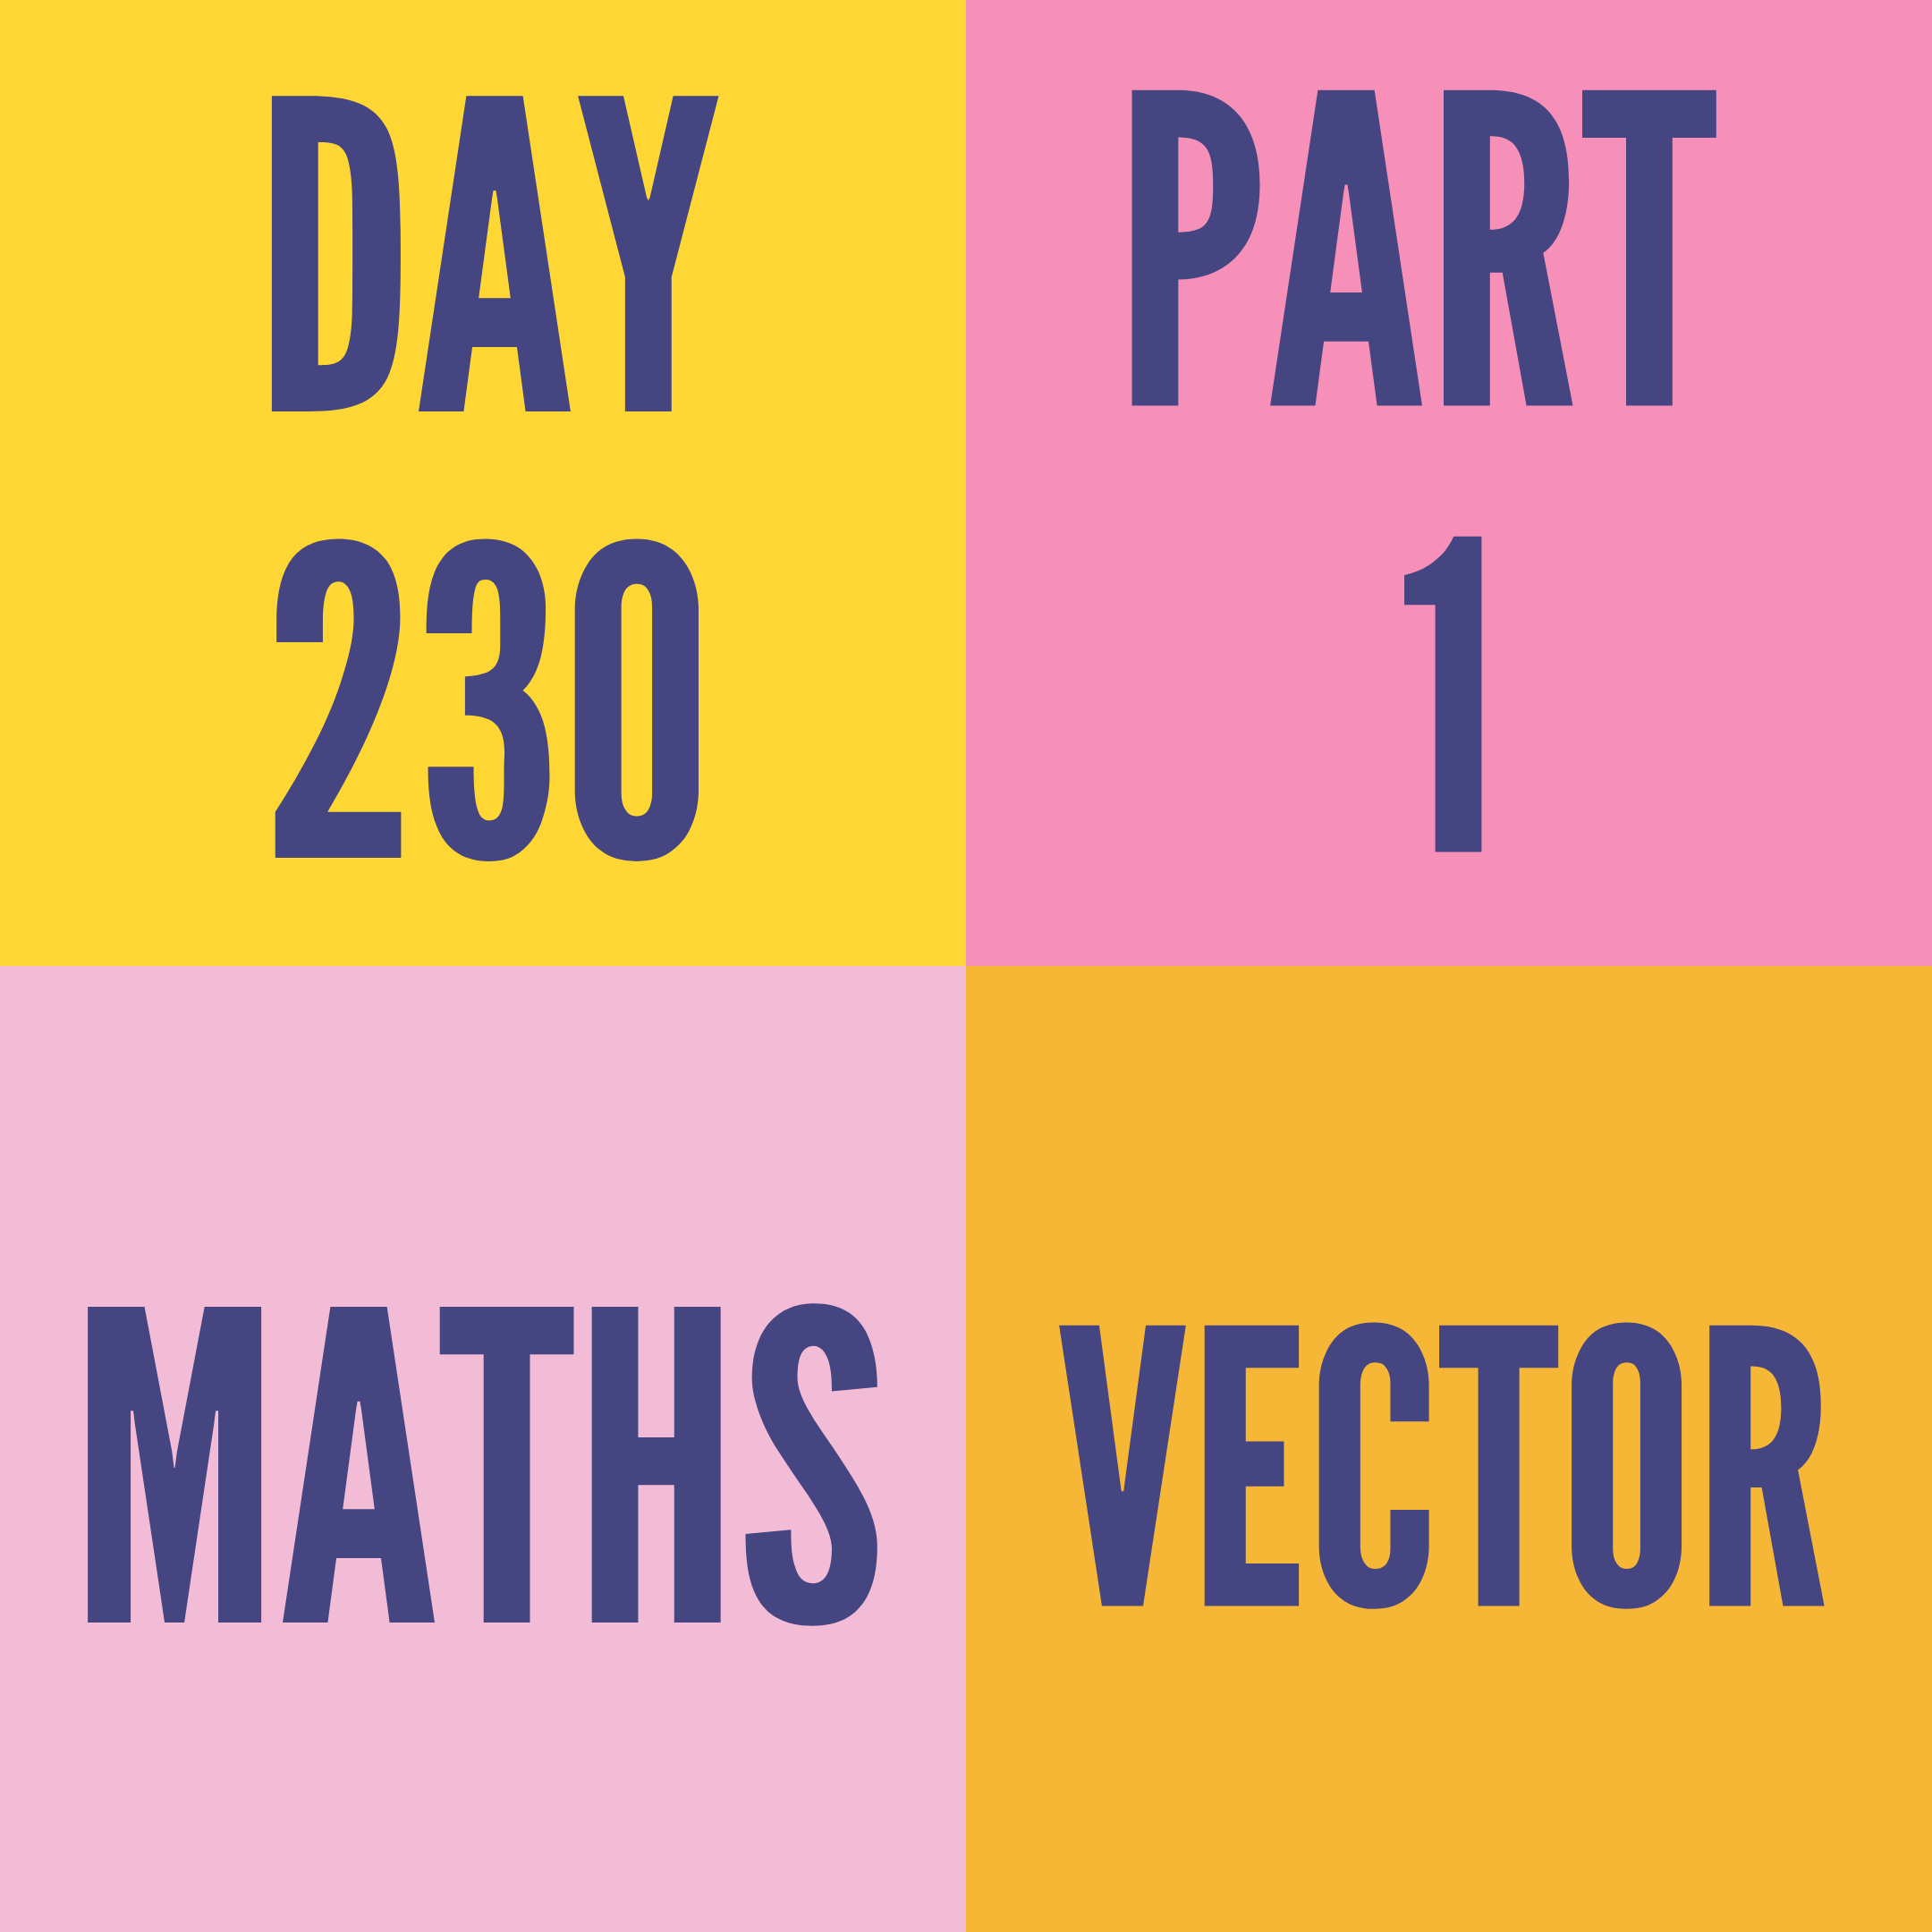 DAY-230 PART-1 VECTOR